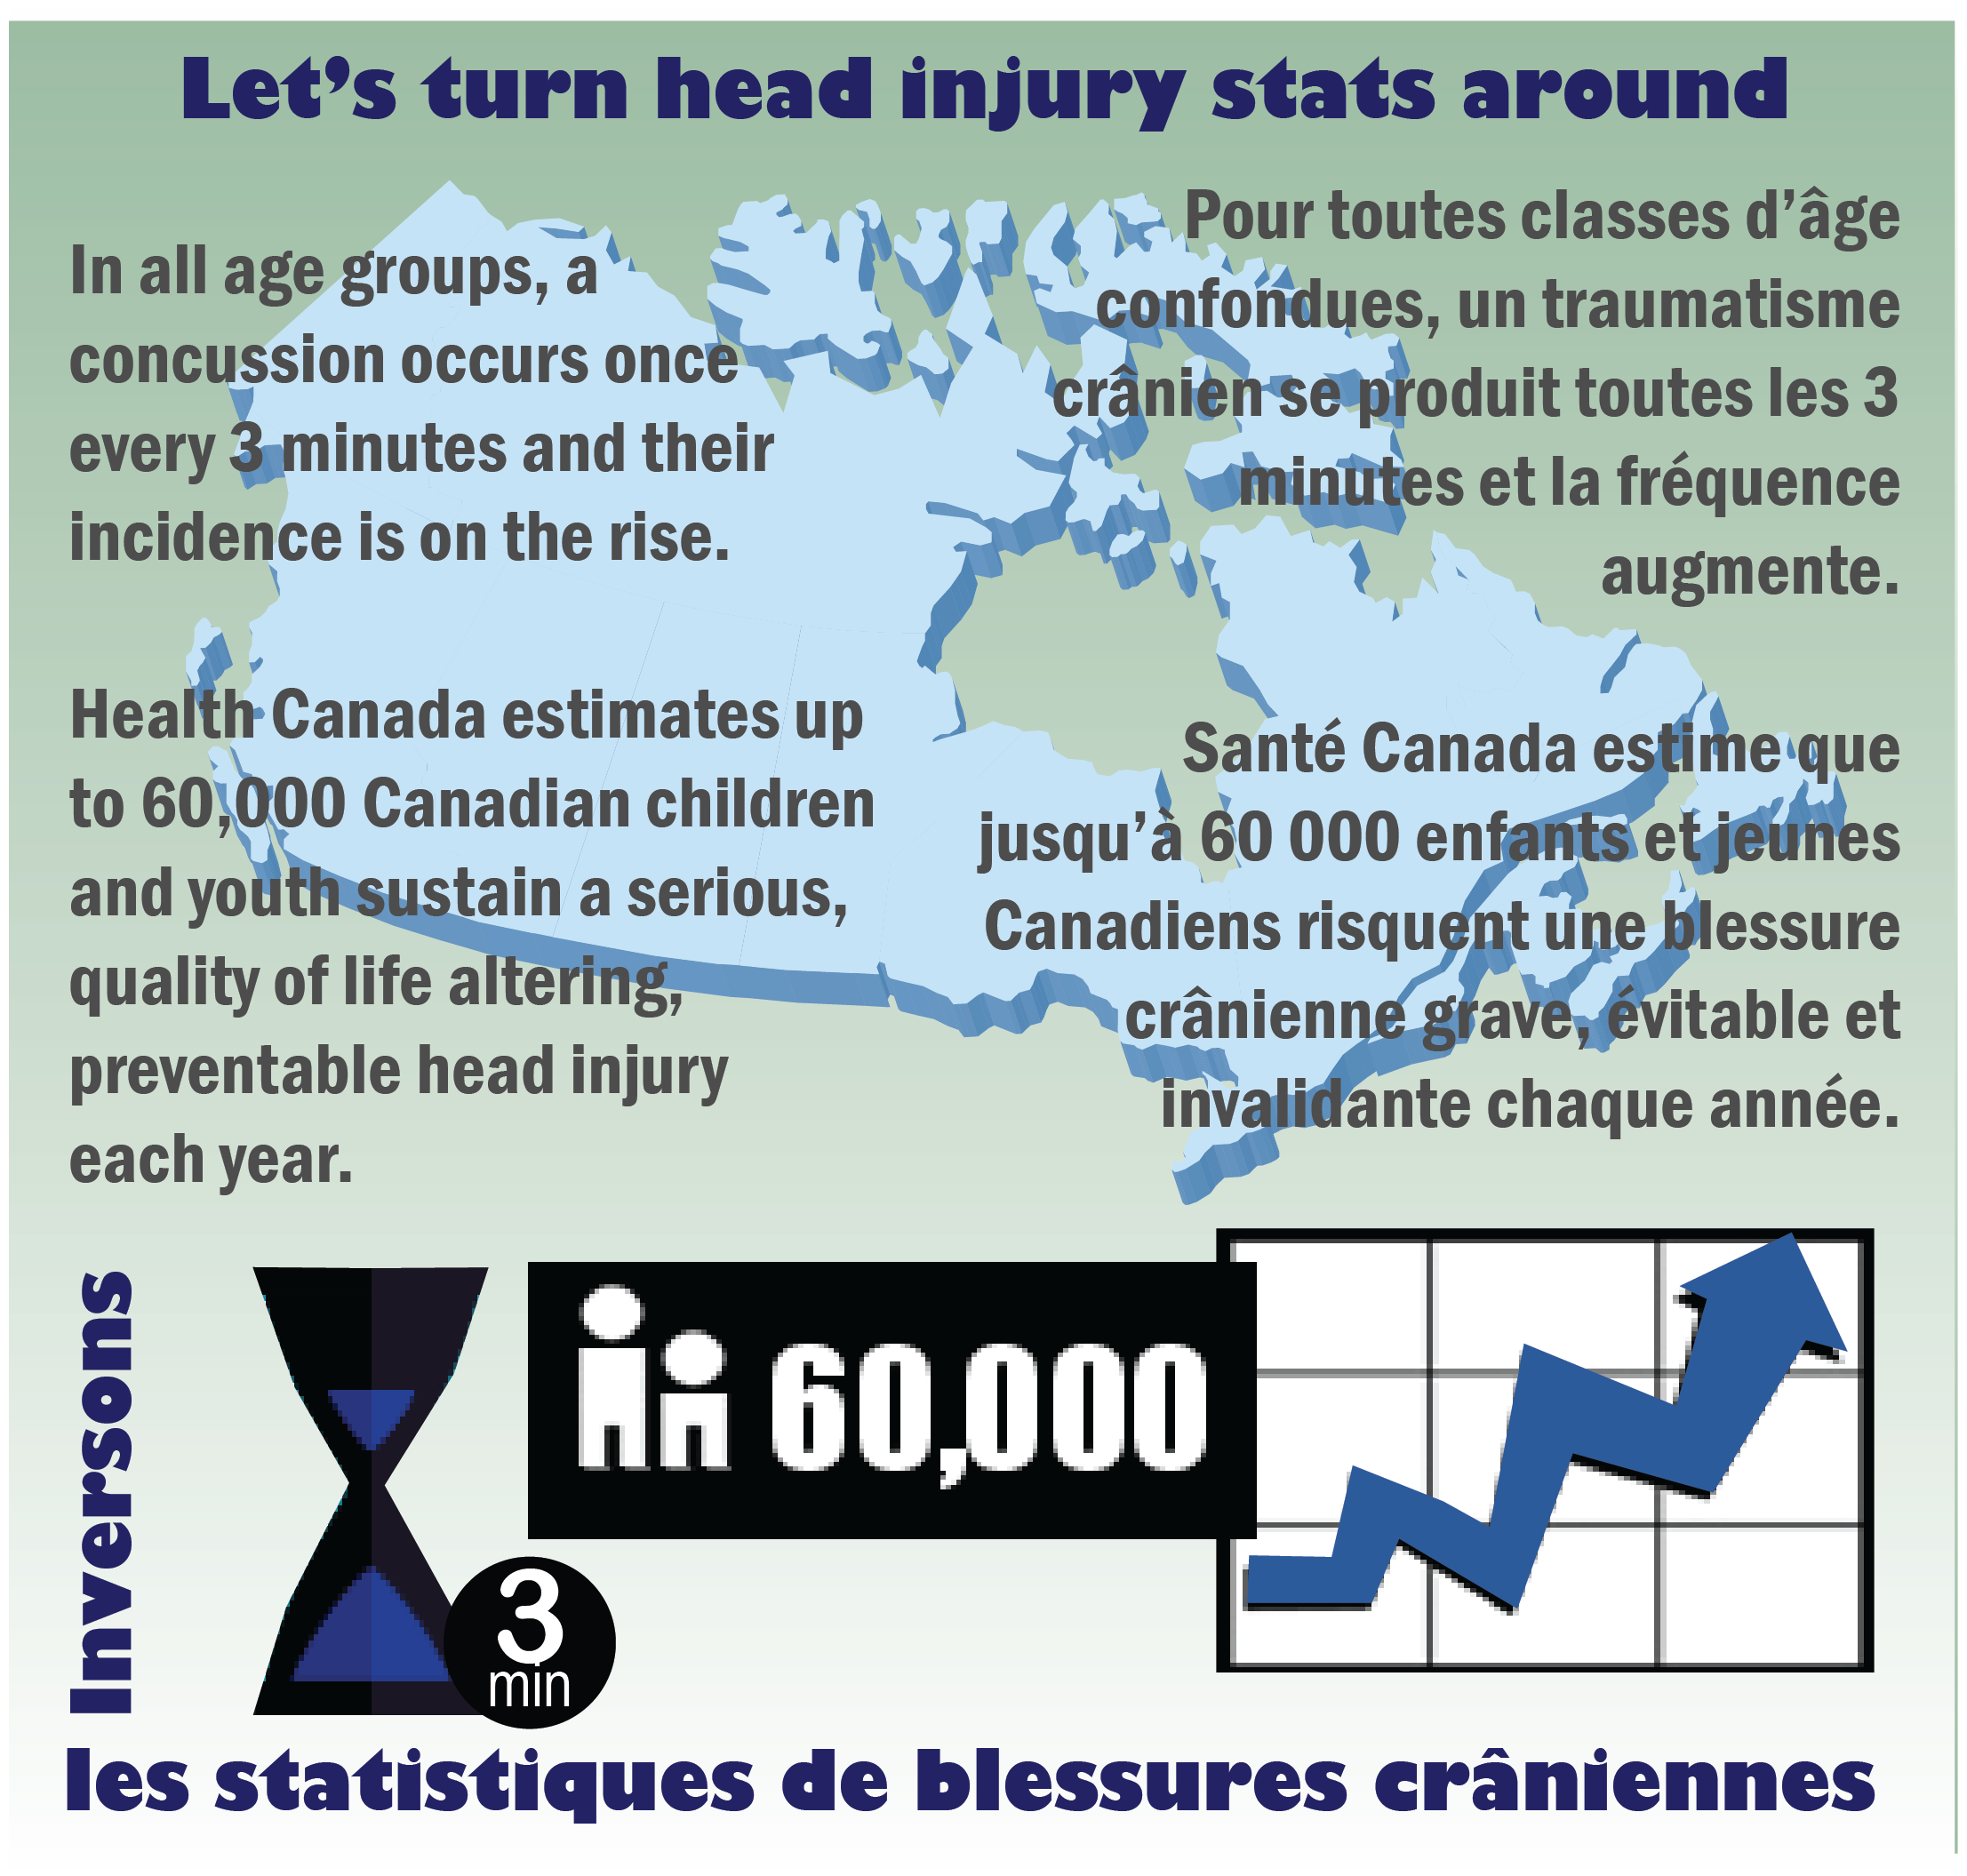 Head Injury Stats in Canada